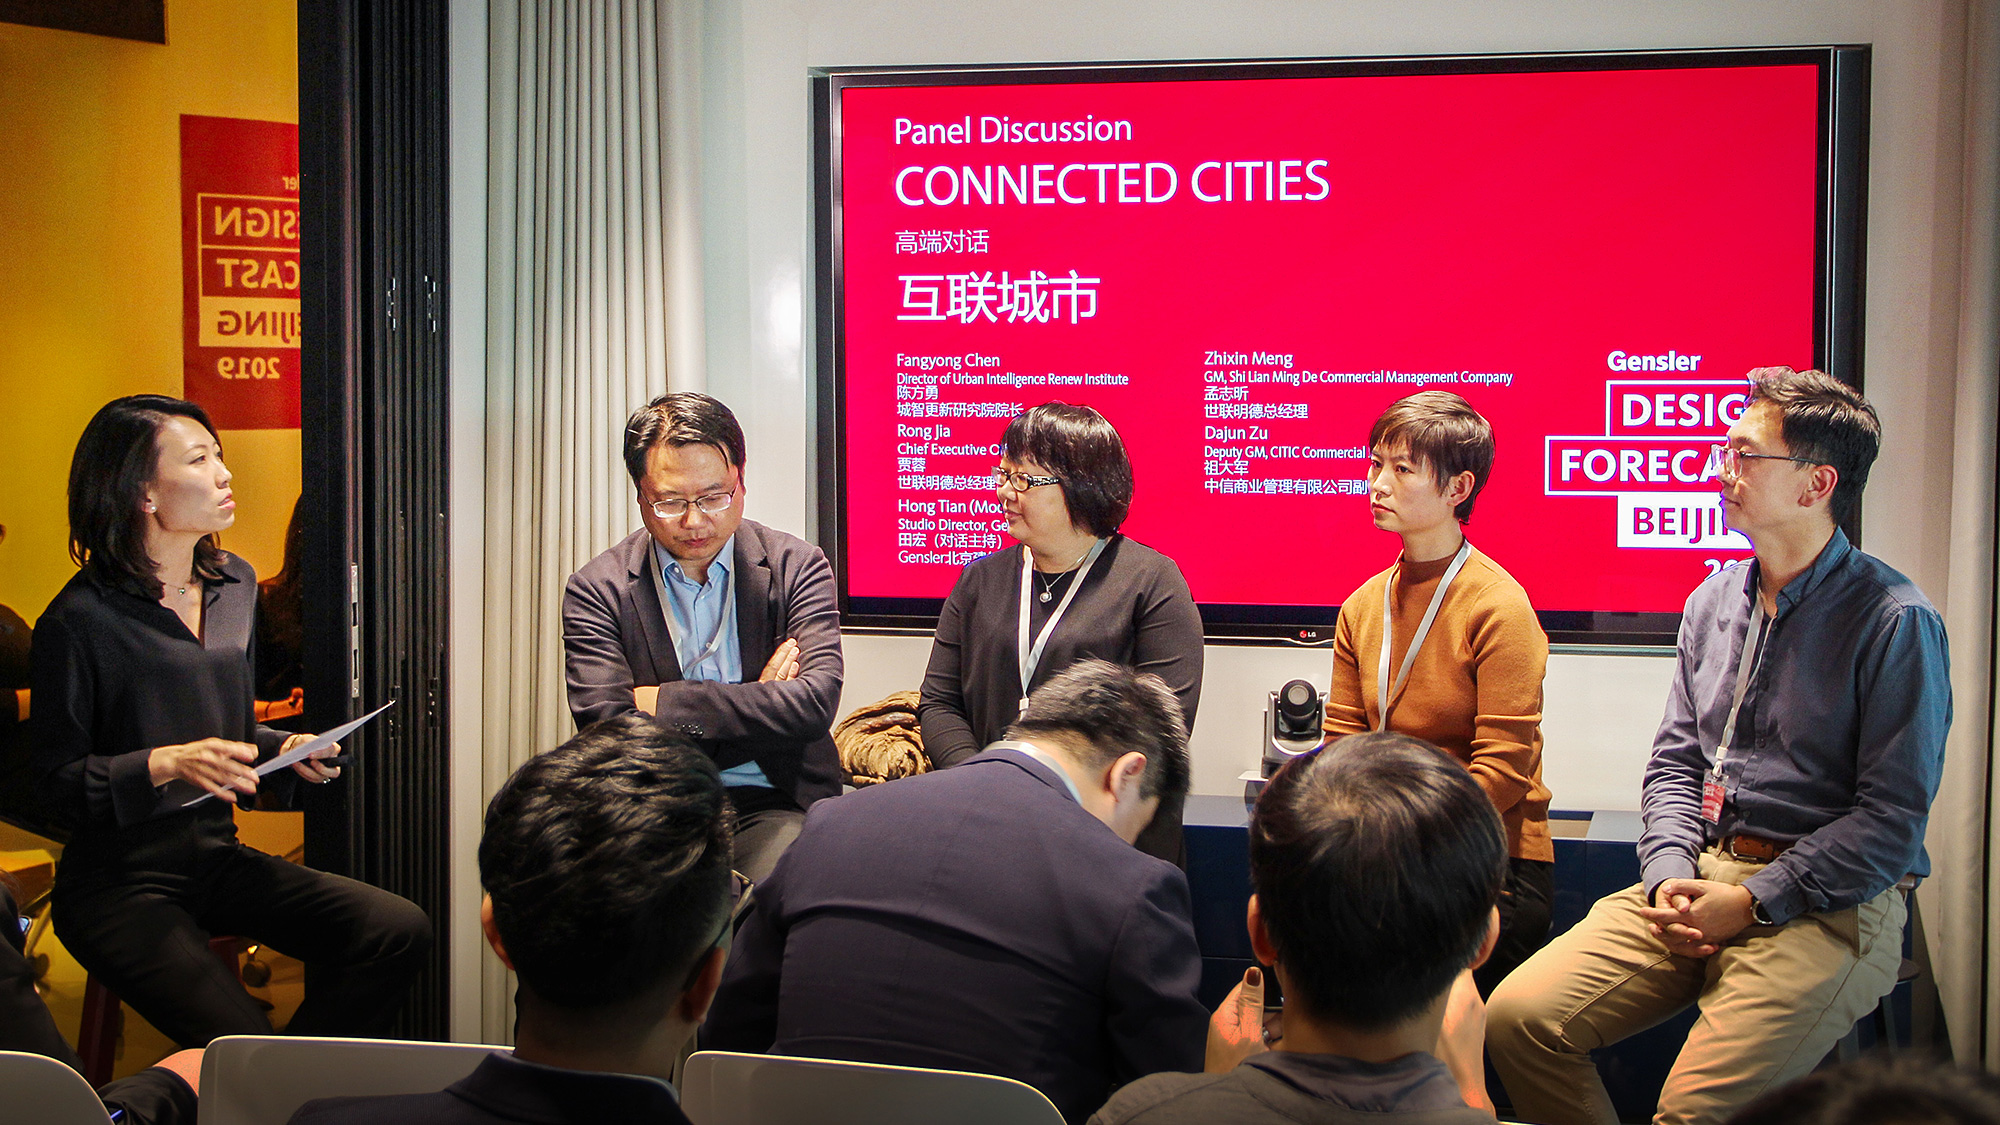 Panelists discuss the topic of connected cities